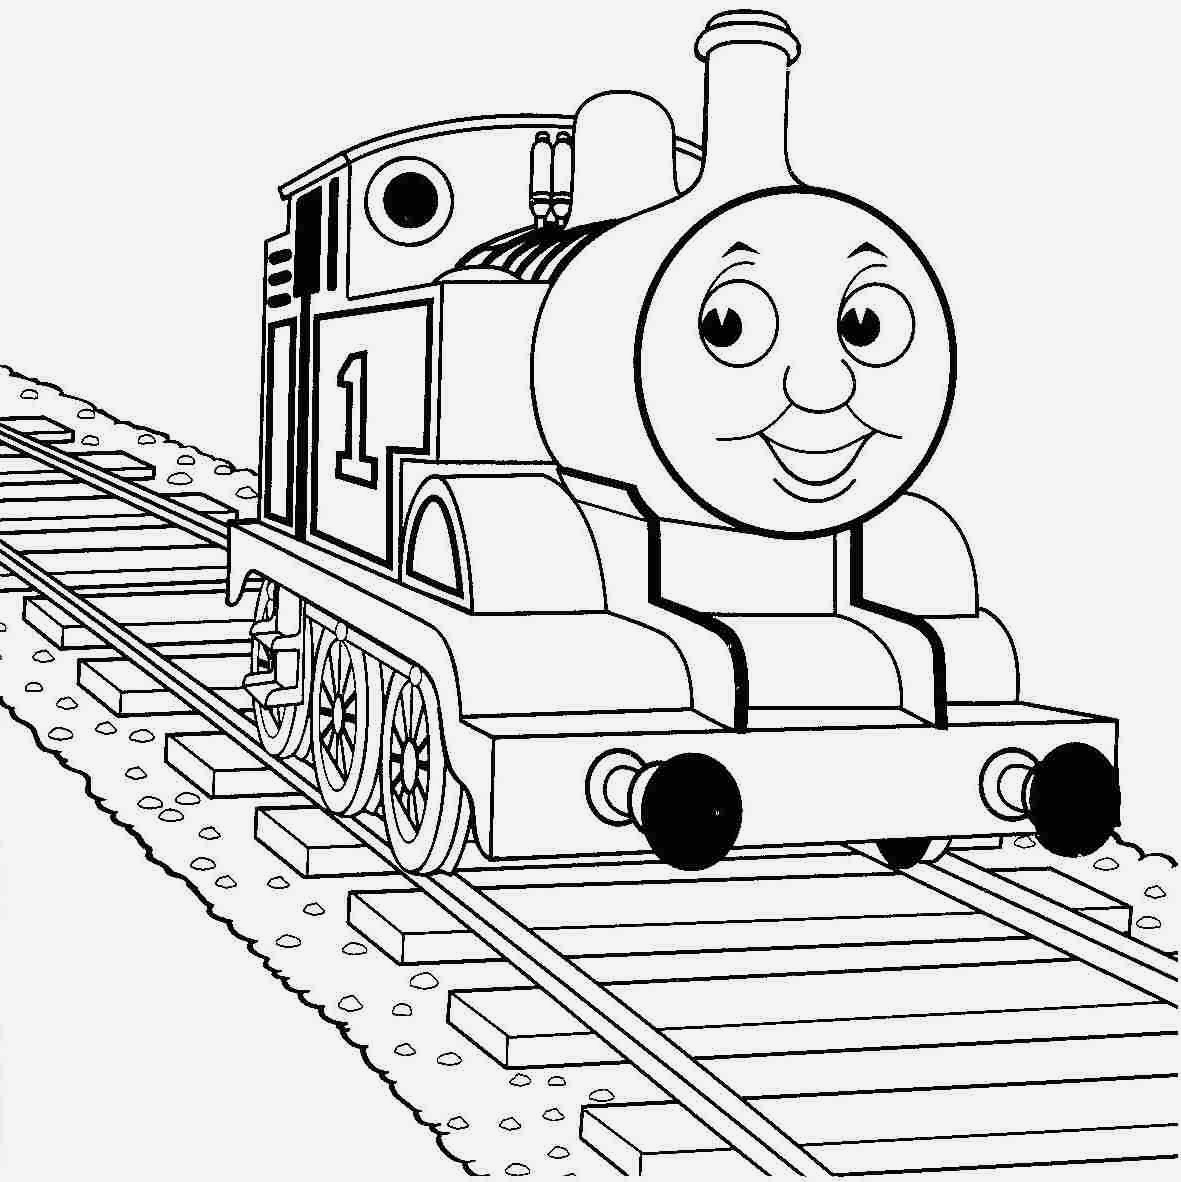 Coloring Pages Thomas the Train - Free Printable Thomas the Train Coloring Pages